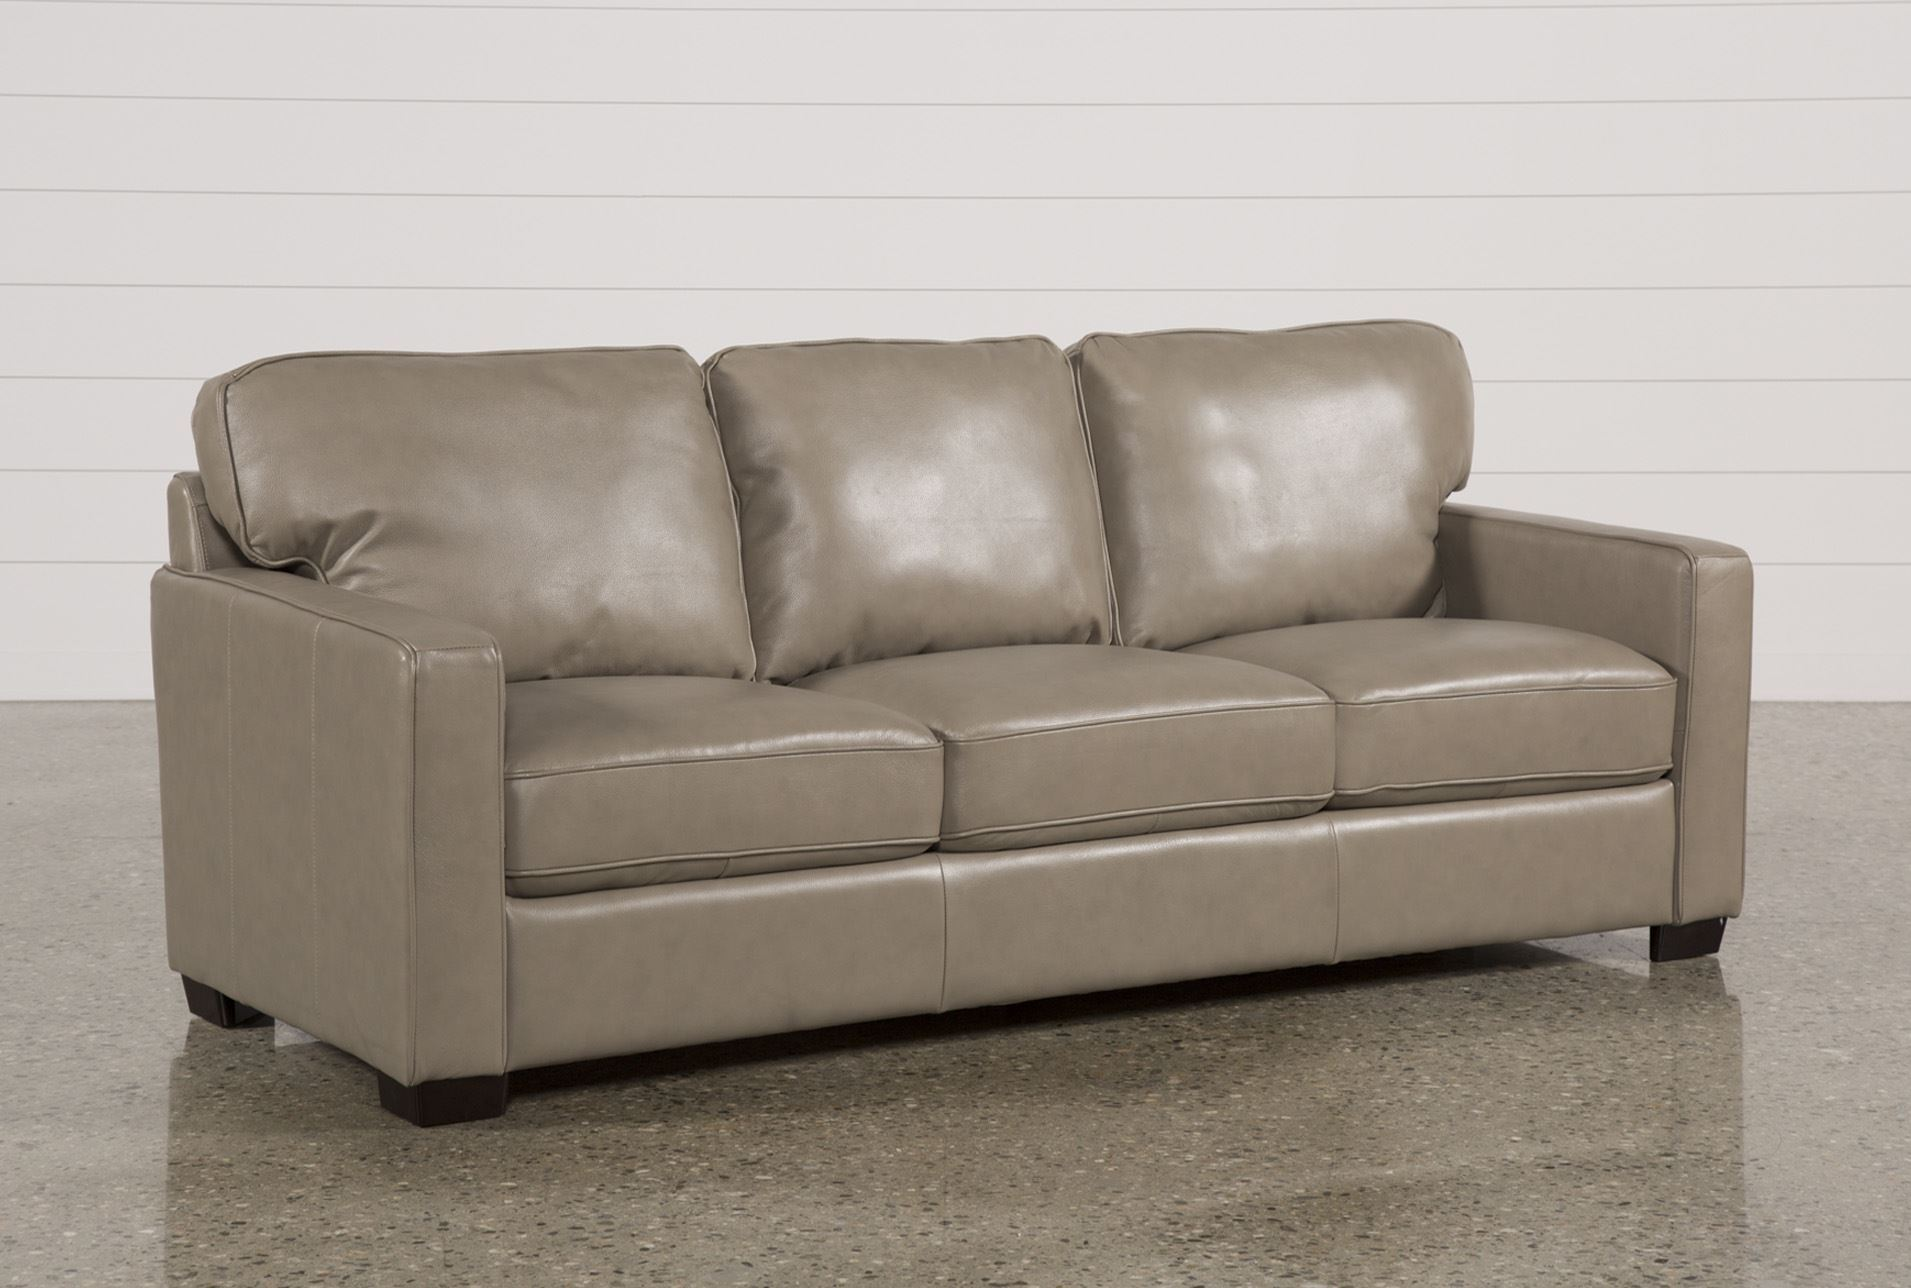 Astonishing Leather Sofa How To Prevent Your Sofas Sagging 12 Couches Dailytribune Chair Design For Home Dailytribuneorg